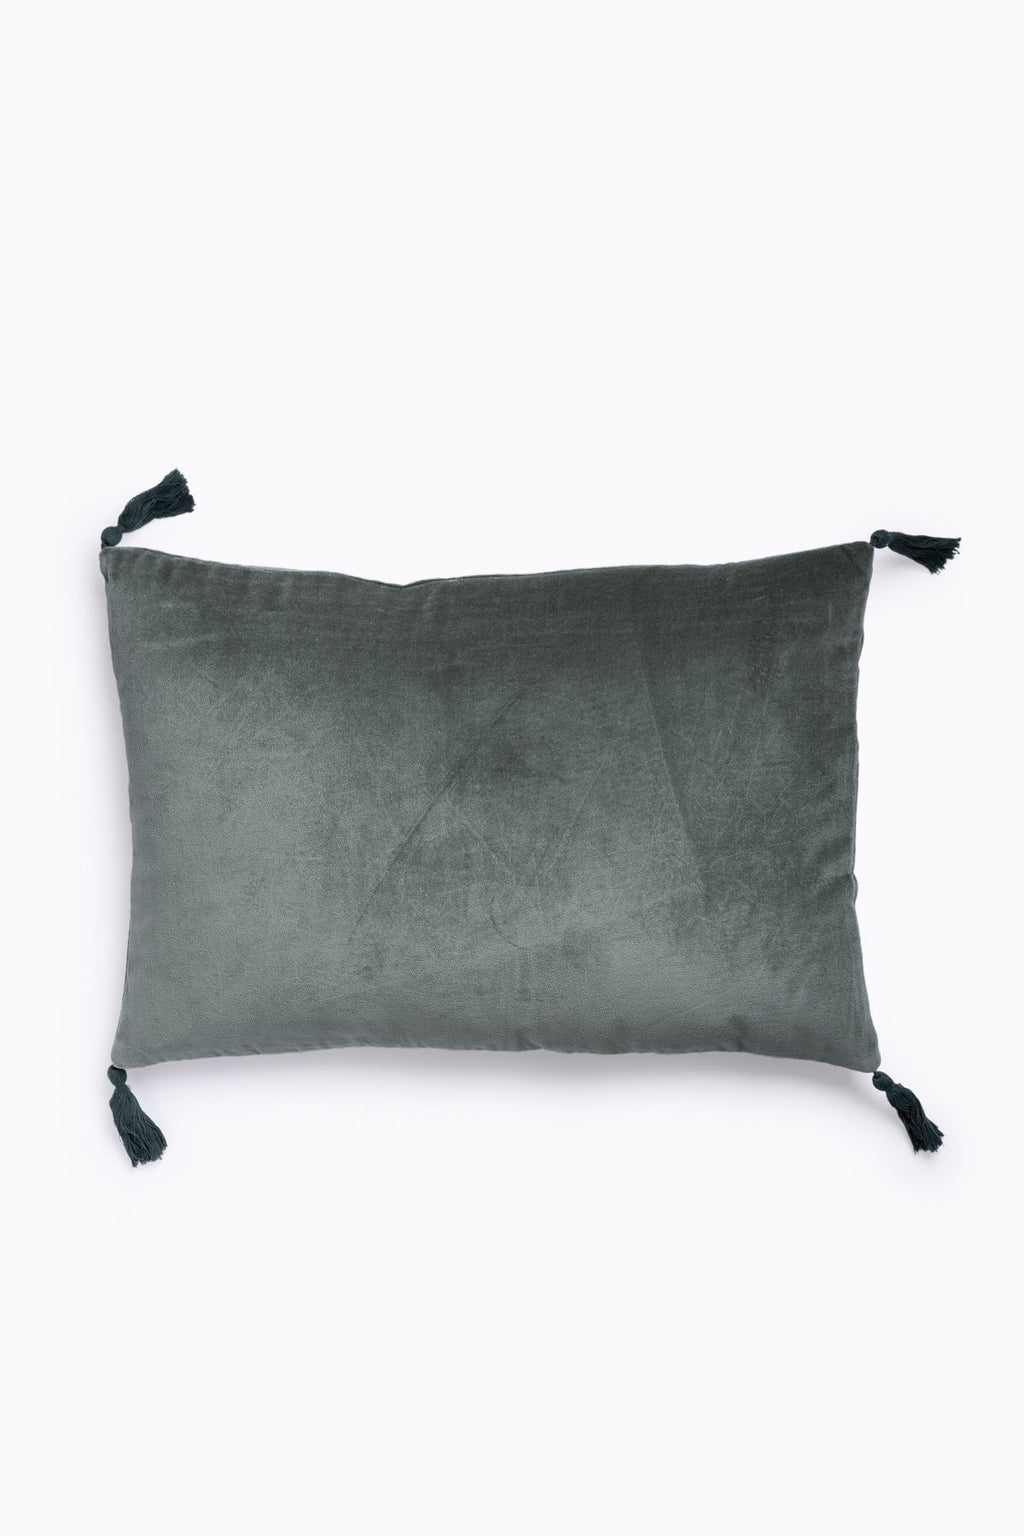 HOME: Velvet Pillow with Tassels in Faded Jade